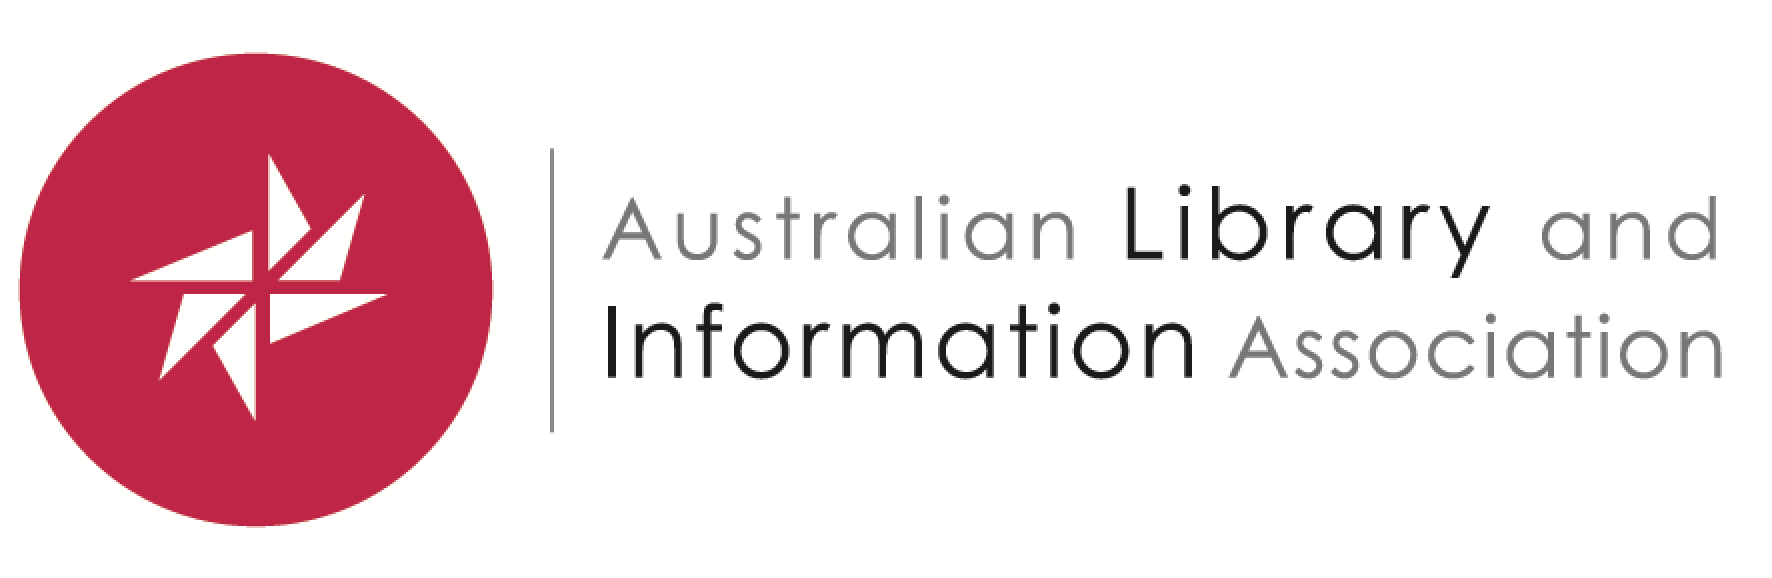 The Australian Library and Information Association